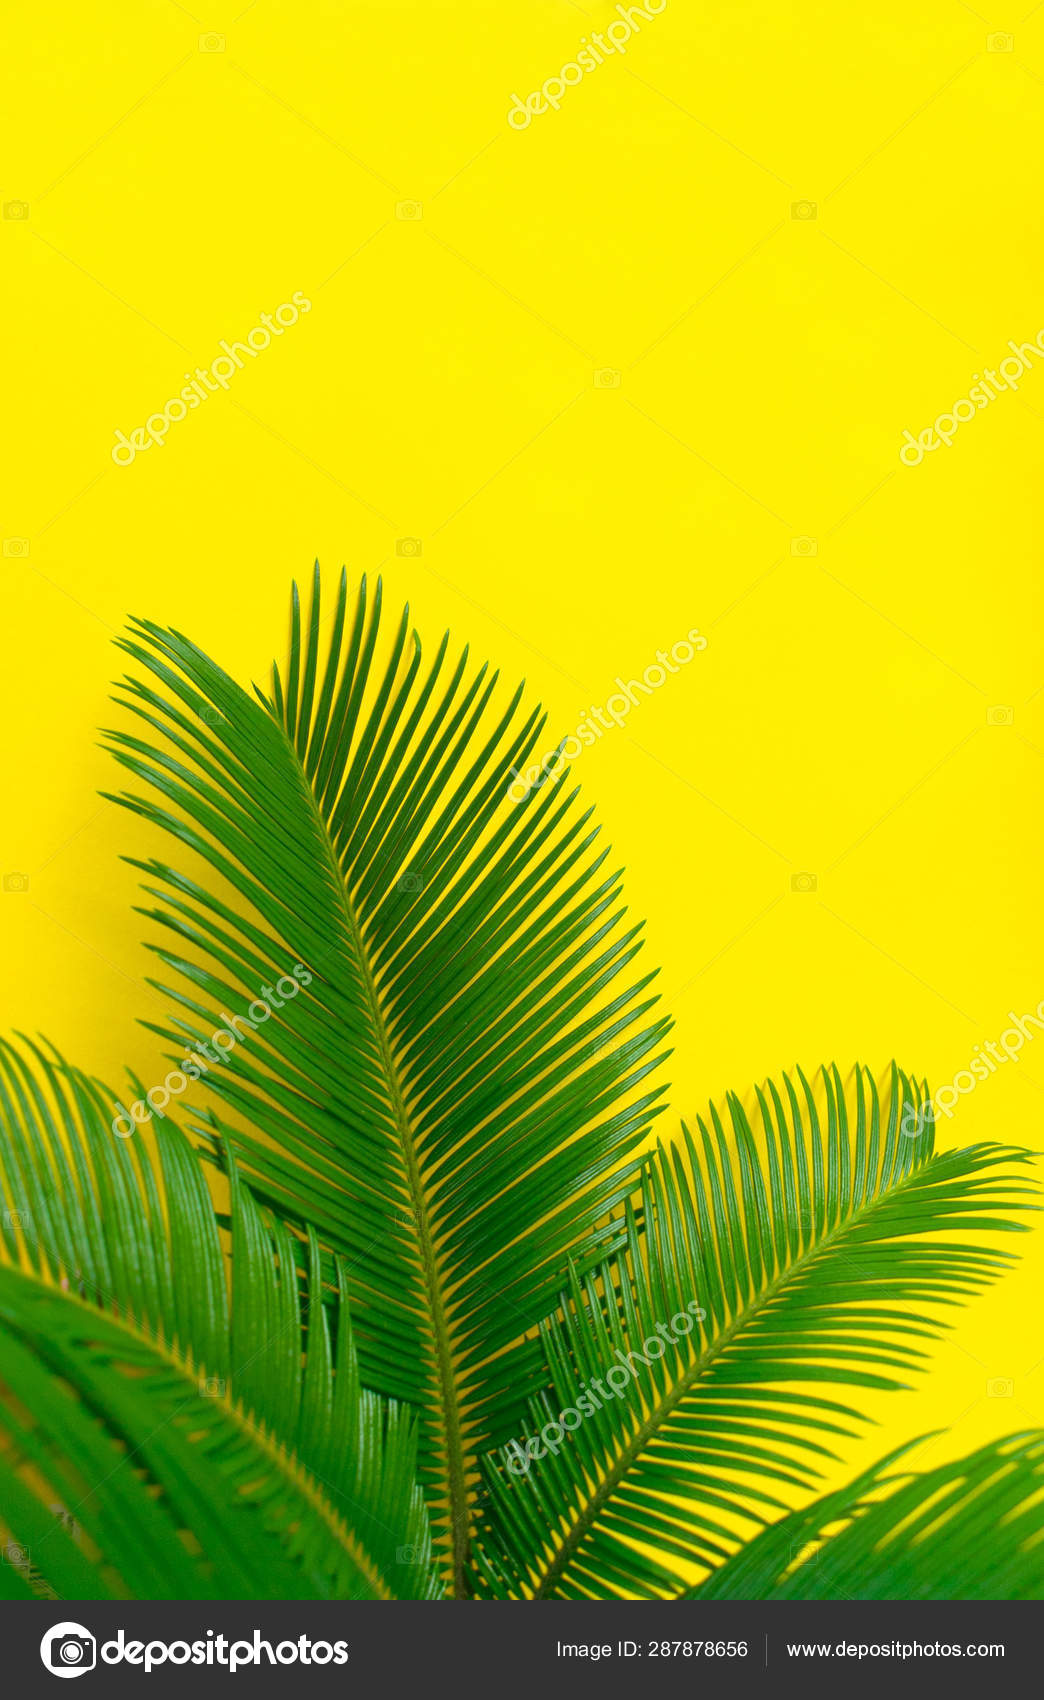 Tropical Palm Leaves Bright Yellow Background Creative Layout Real Tropical Stock Photo C Olivka888 287878656 Feel free to send us your own wallpaper and we will consider adding it to appropriate category. tropical palm leaves bright yellow background creative layout real tropical stock photo c olivka888 287878656